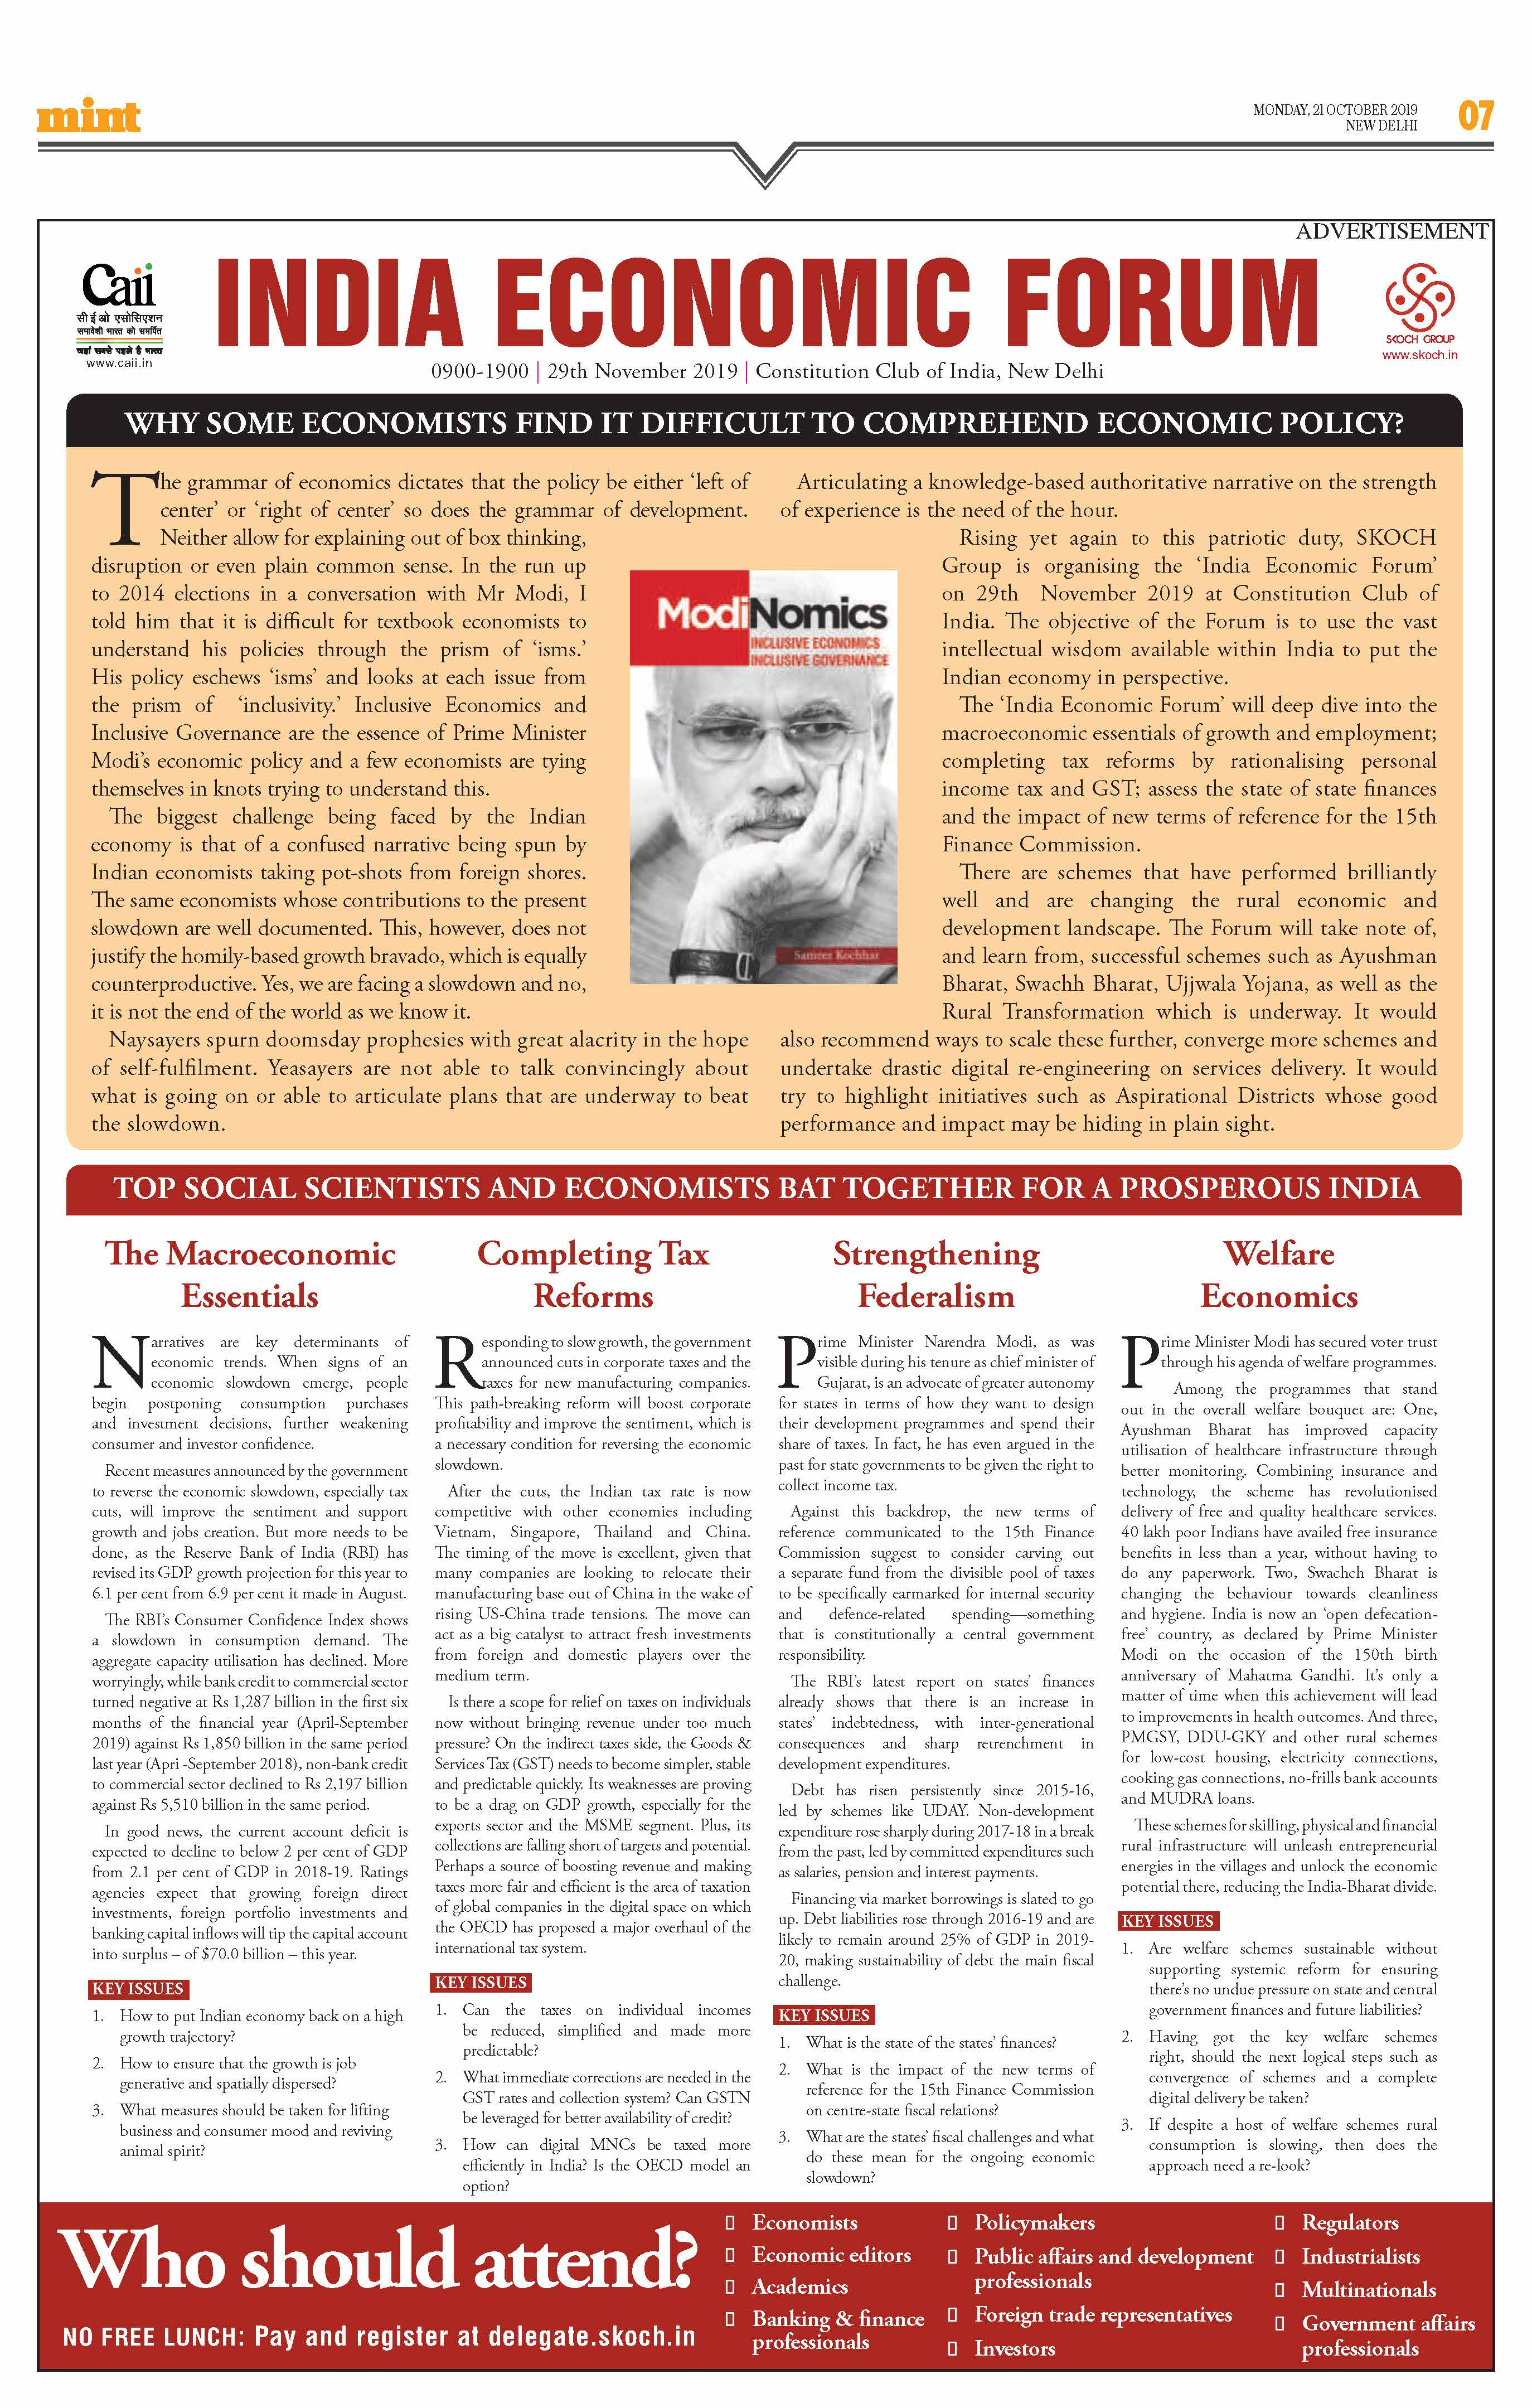 SKOCH Feature published in the Mint across all editions nationwide on 21st October 2019